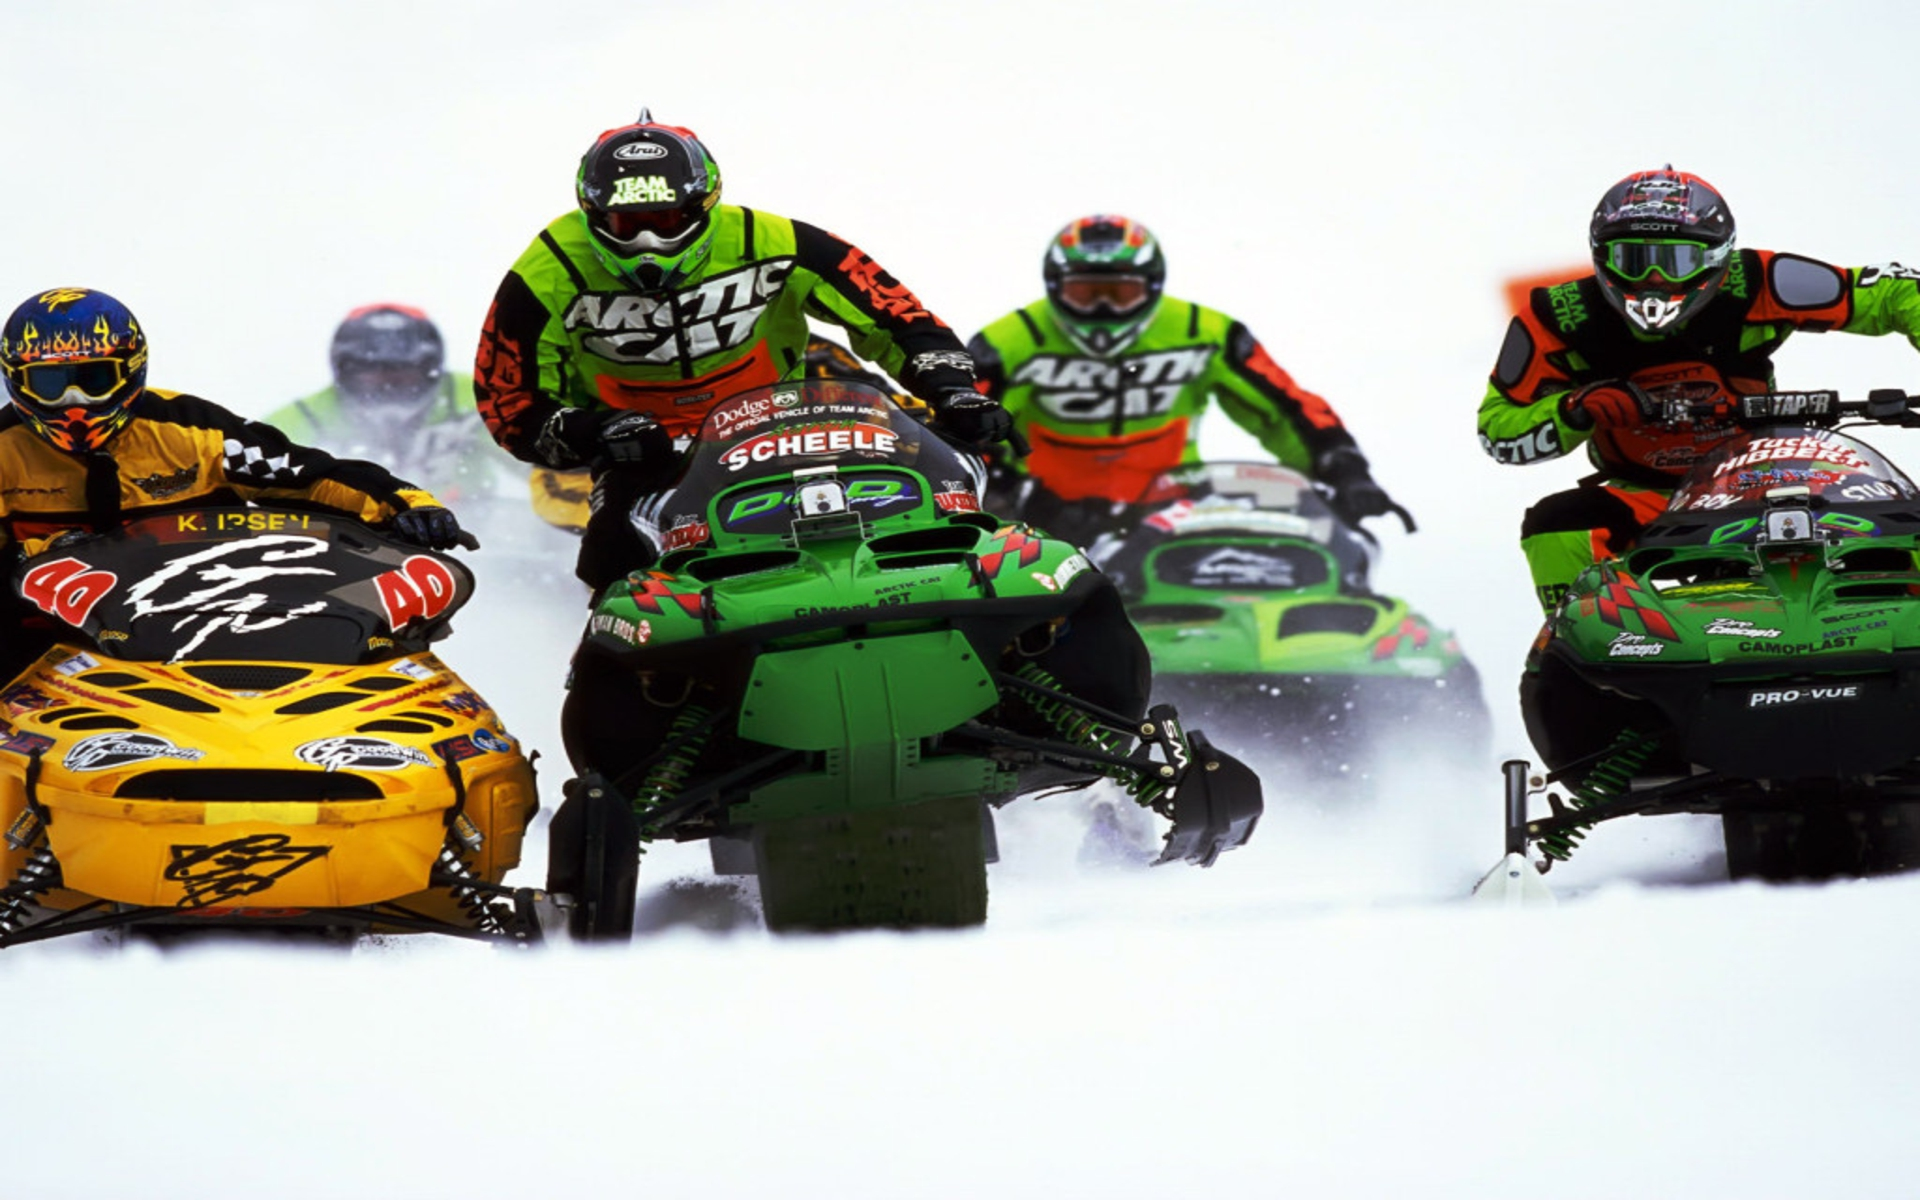 DOWNLOAD: Sport Snowmobile Racing.jpg free picture 2560 x 1600